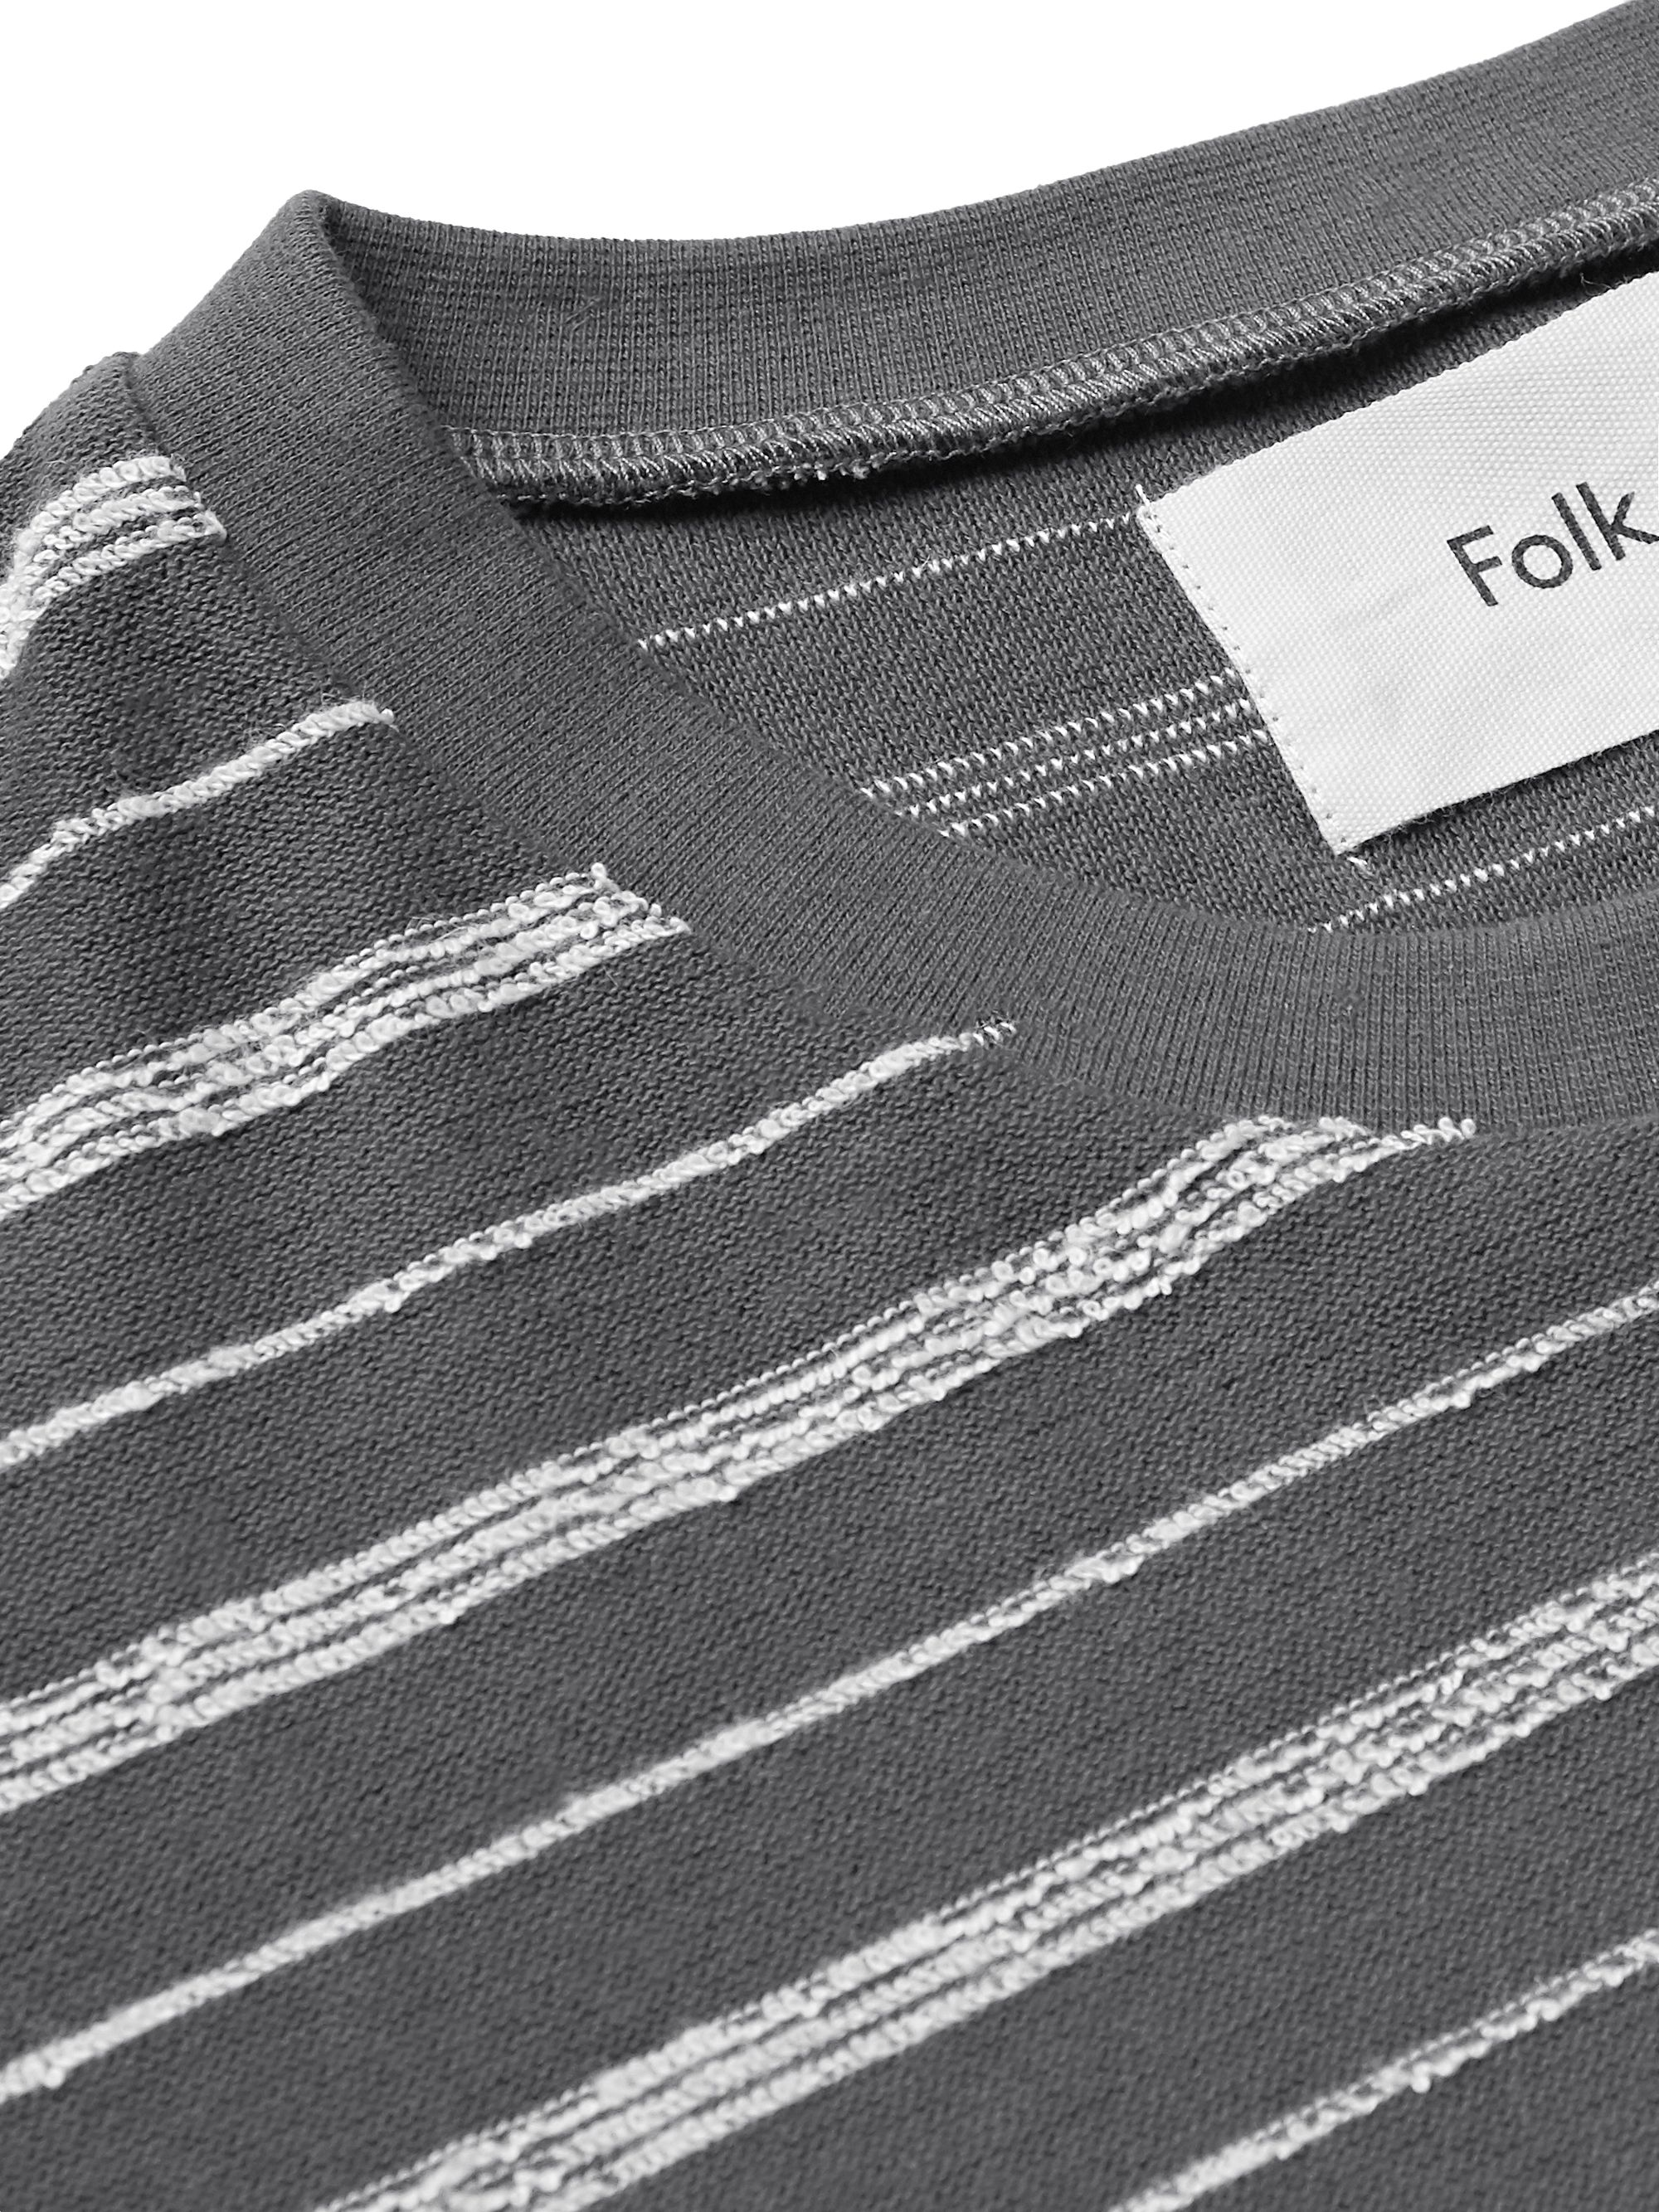 Folk Striped Cotton-Blend T-Shirt